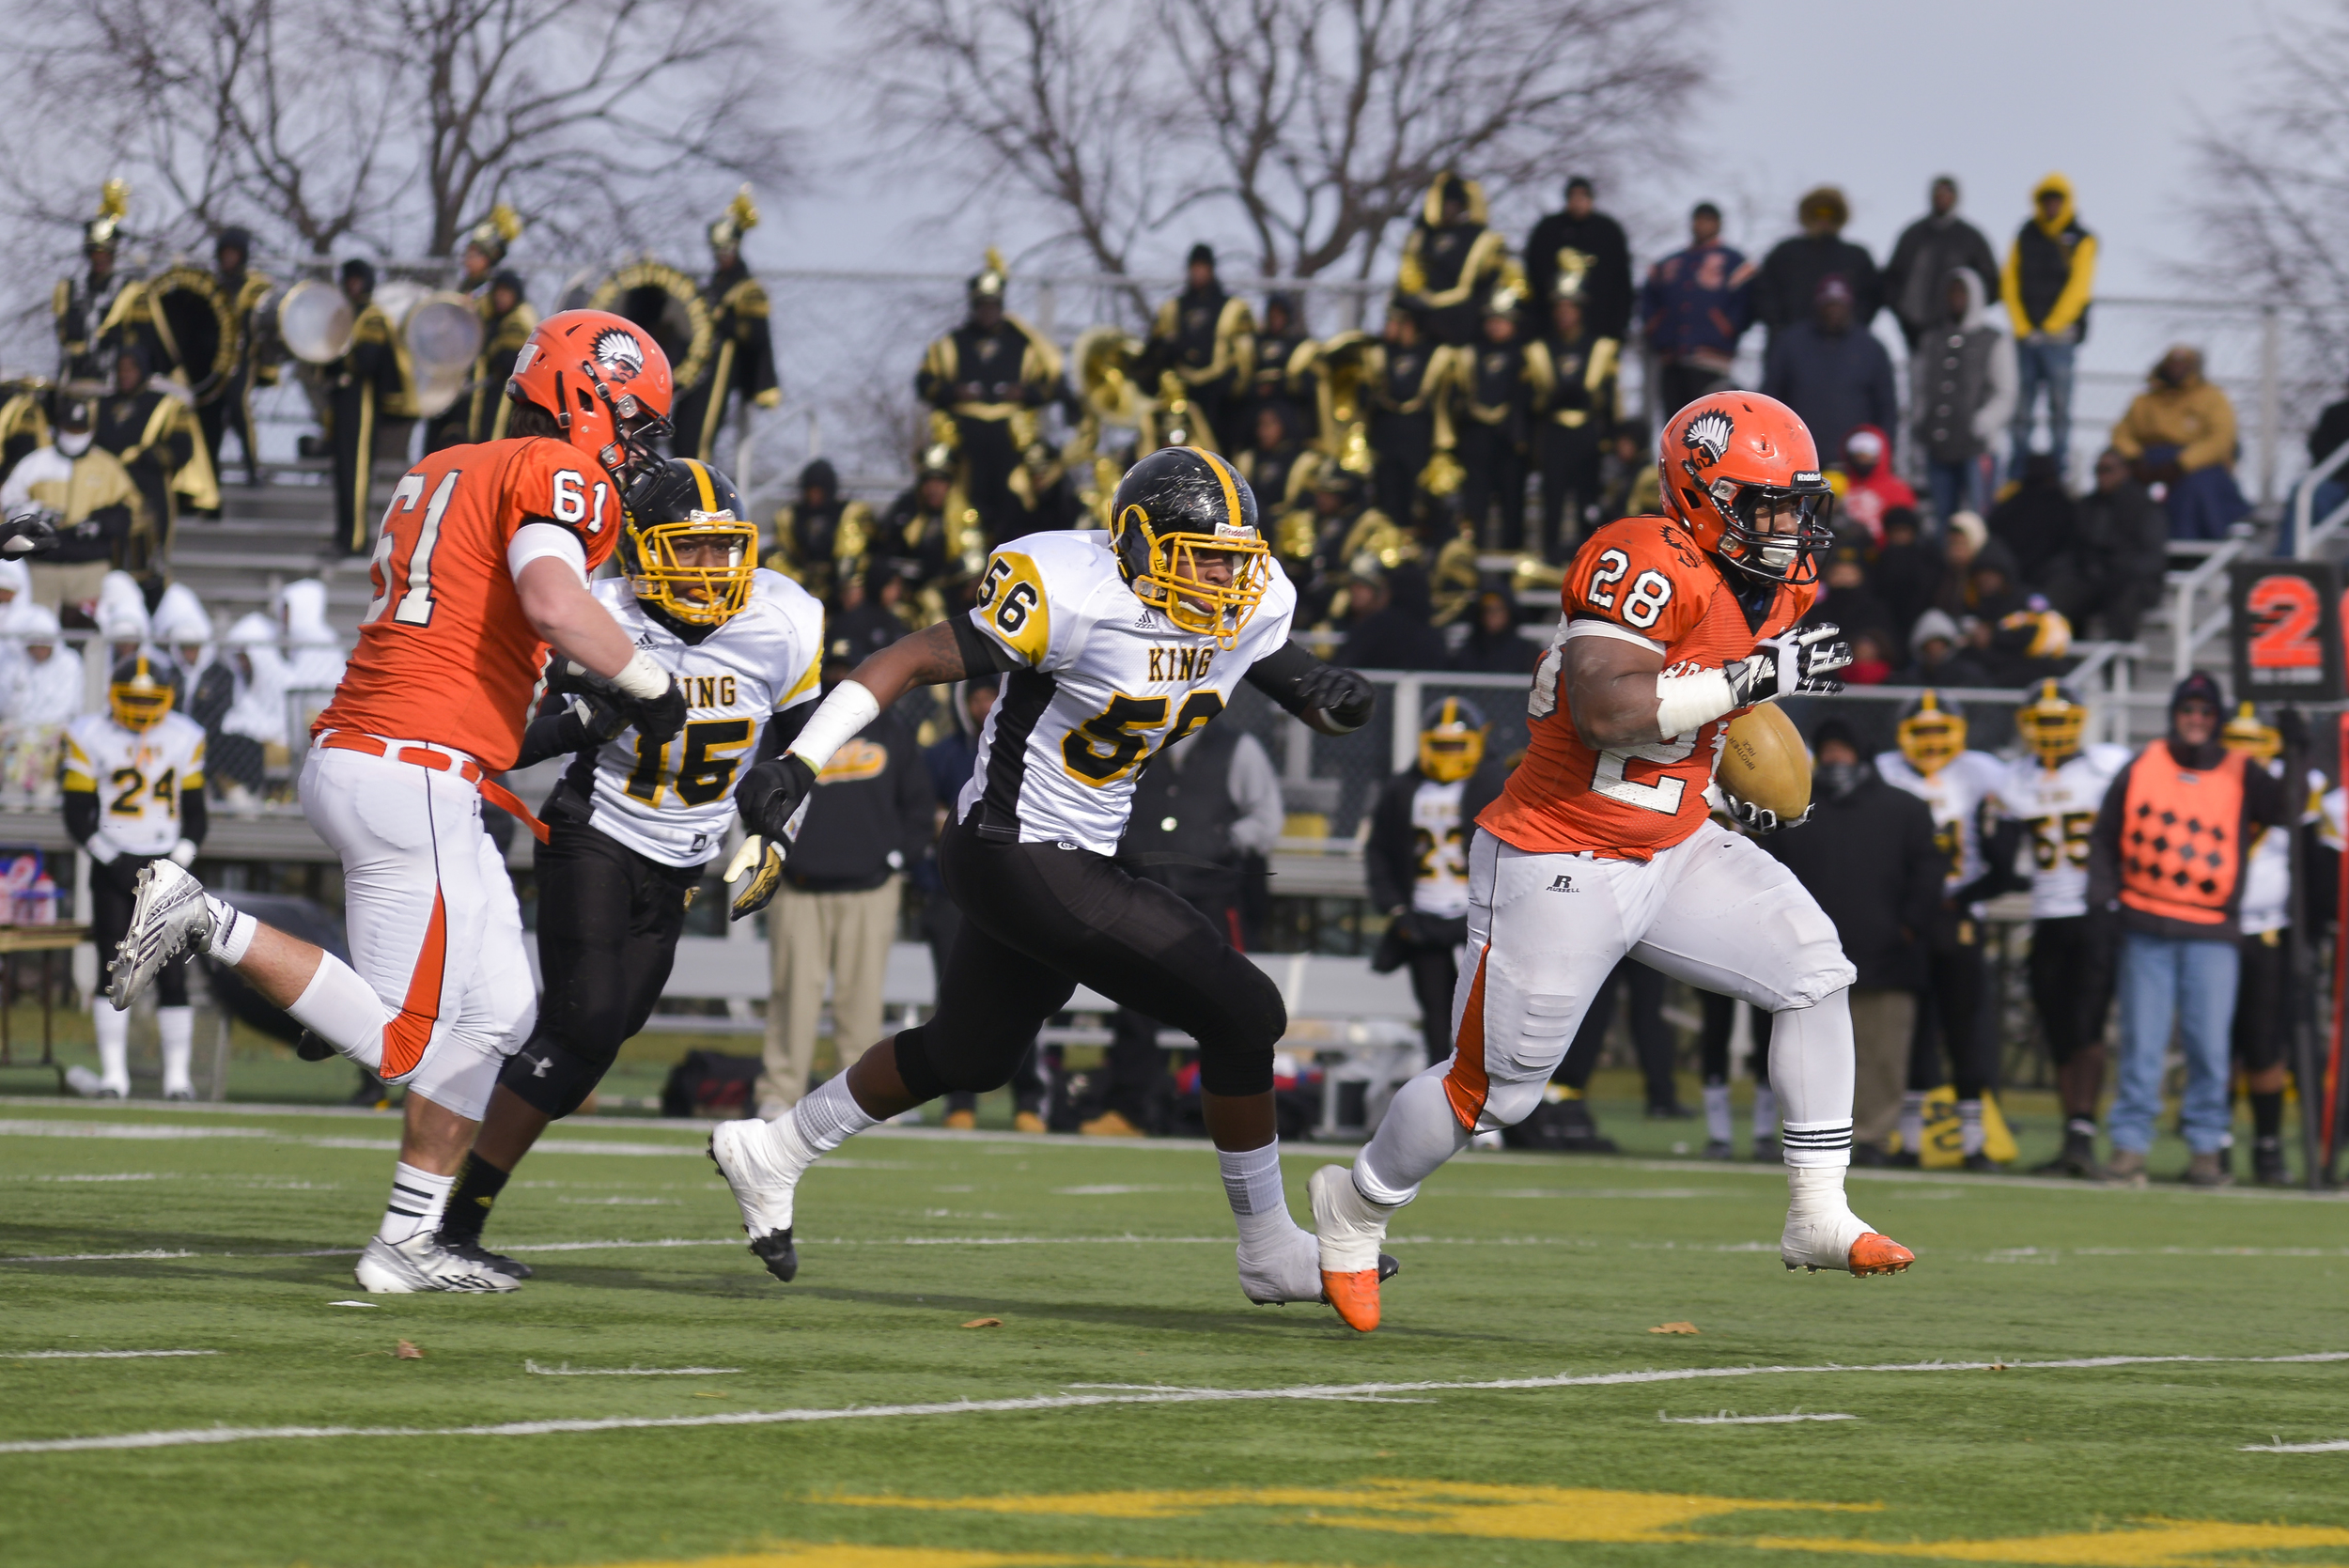 Brother Rice RB Brian Walker runs through a hole in the Detroit King's defense to score a touchdown during the MHSAA State semi-final game. In the first half alone, Walker had 10 carries for 93 yards and 4 touchdowns for Brother Rice.